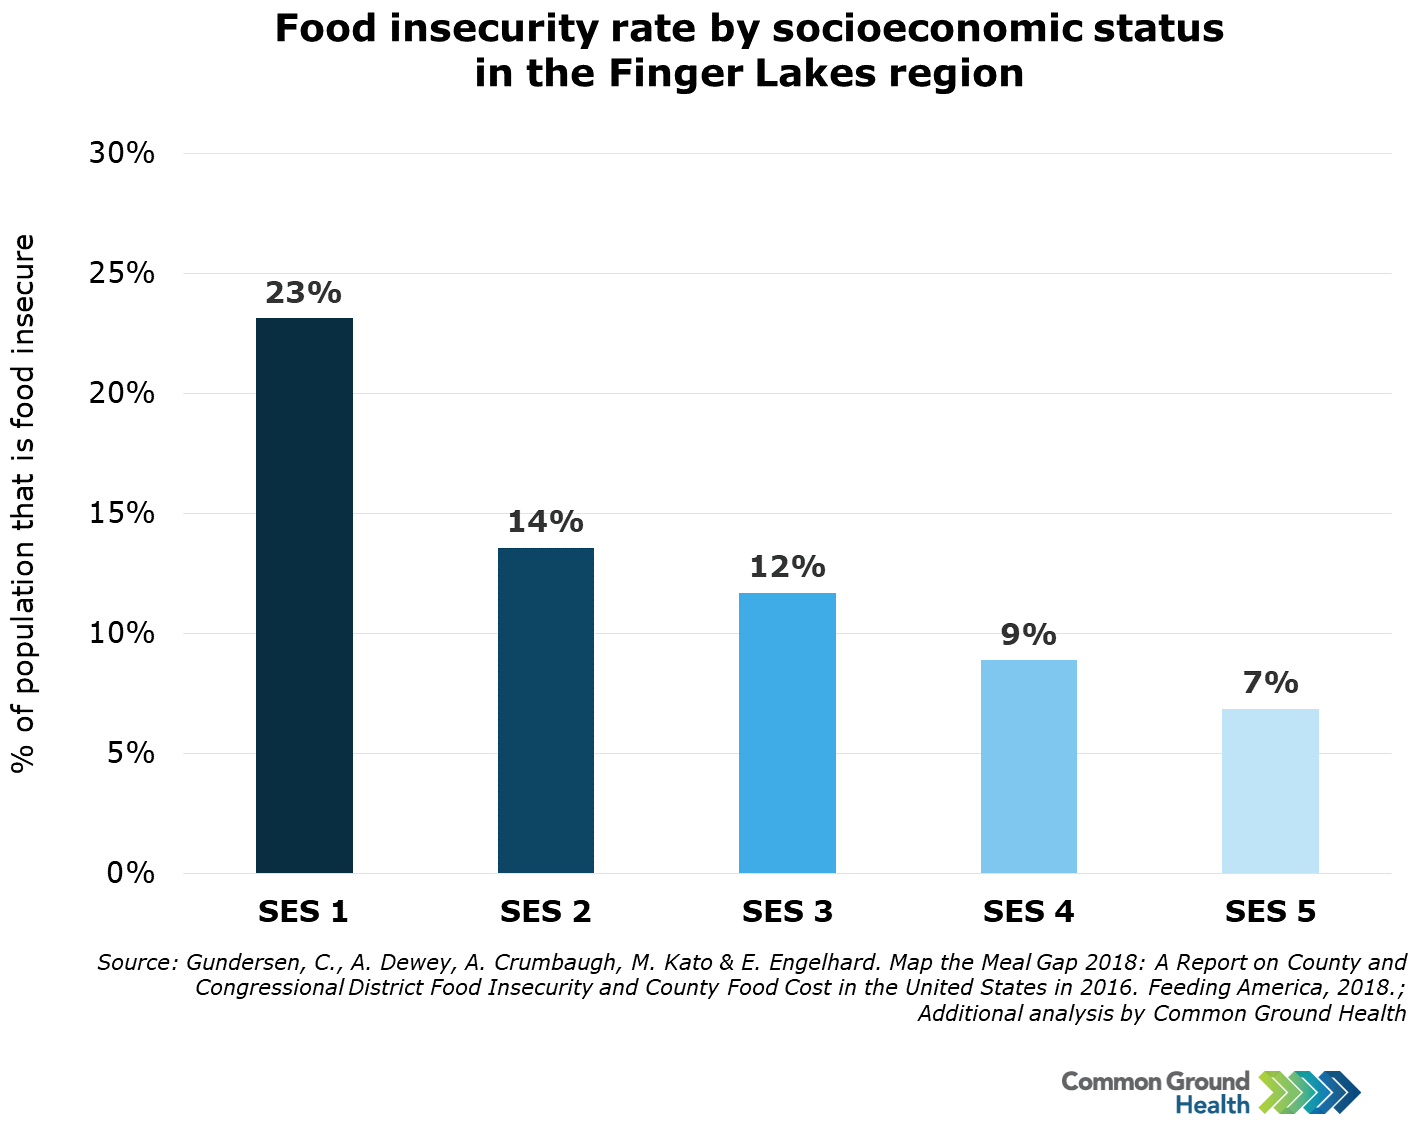 Food Insecurity by Socioeconomic Status